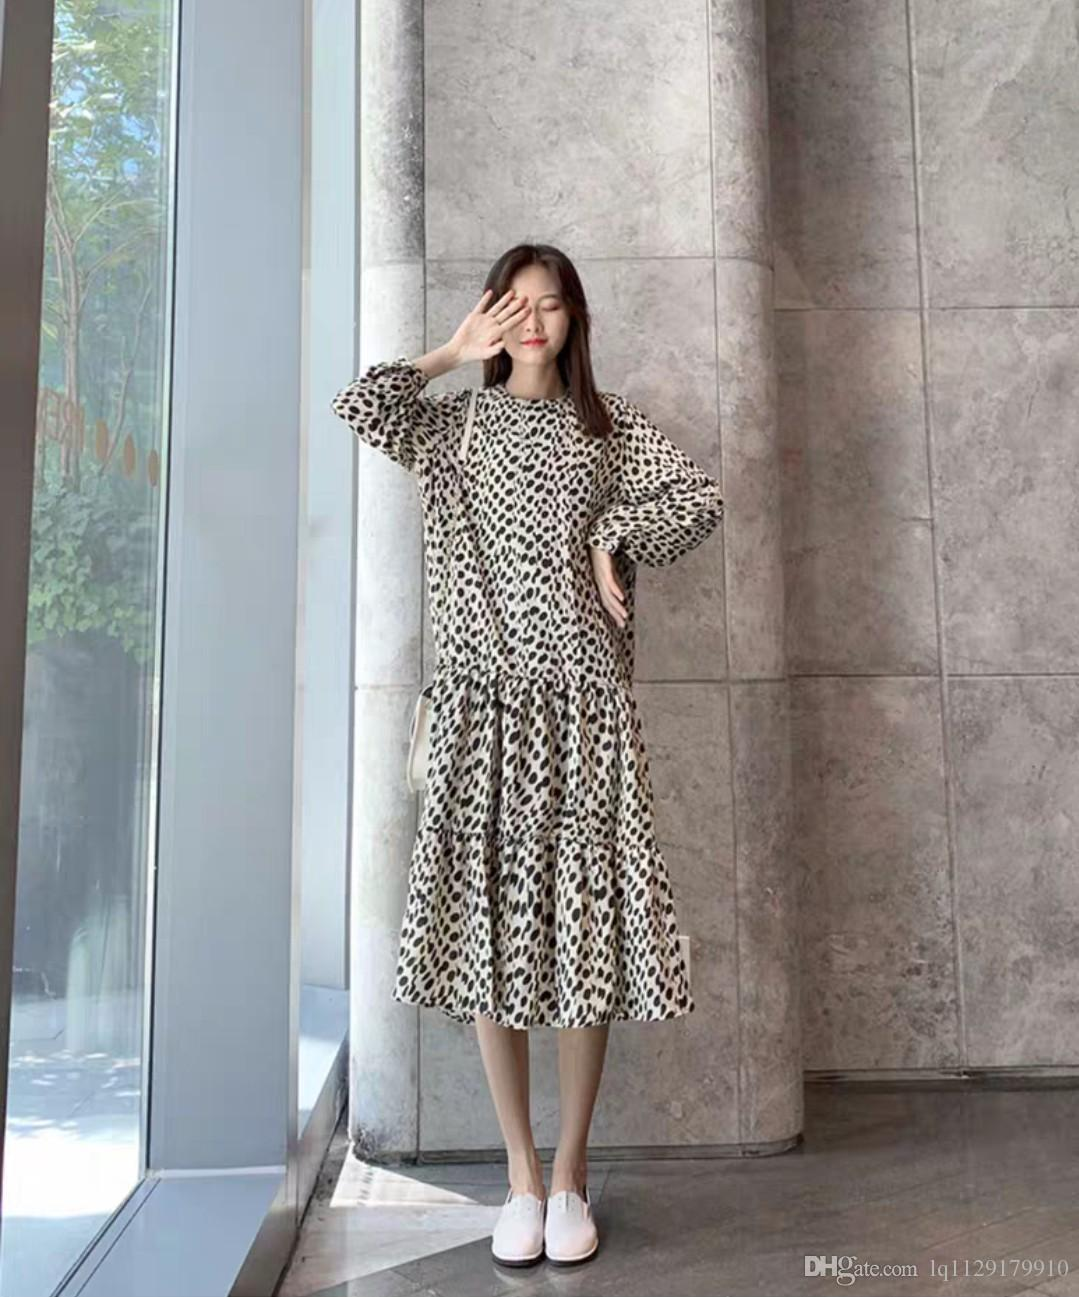 Chiffon dress autumn/winter 2020 new long-style long-sleeved large-size fat mm slimming age wave point two-piece suit